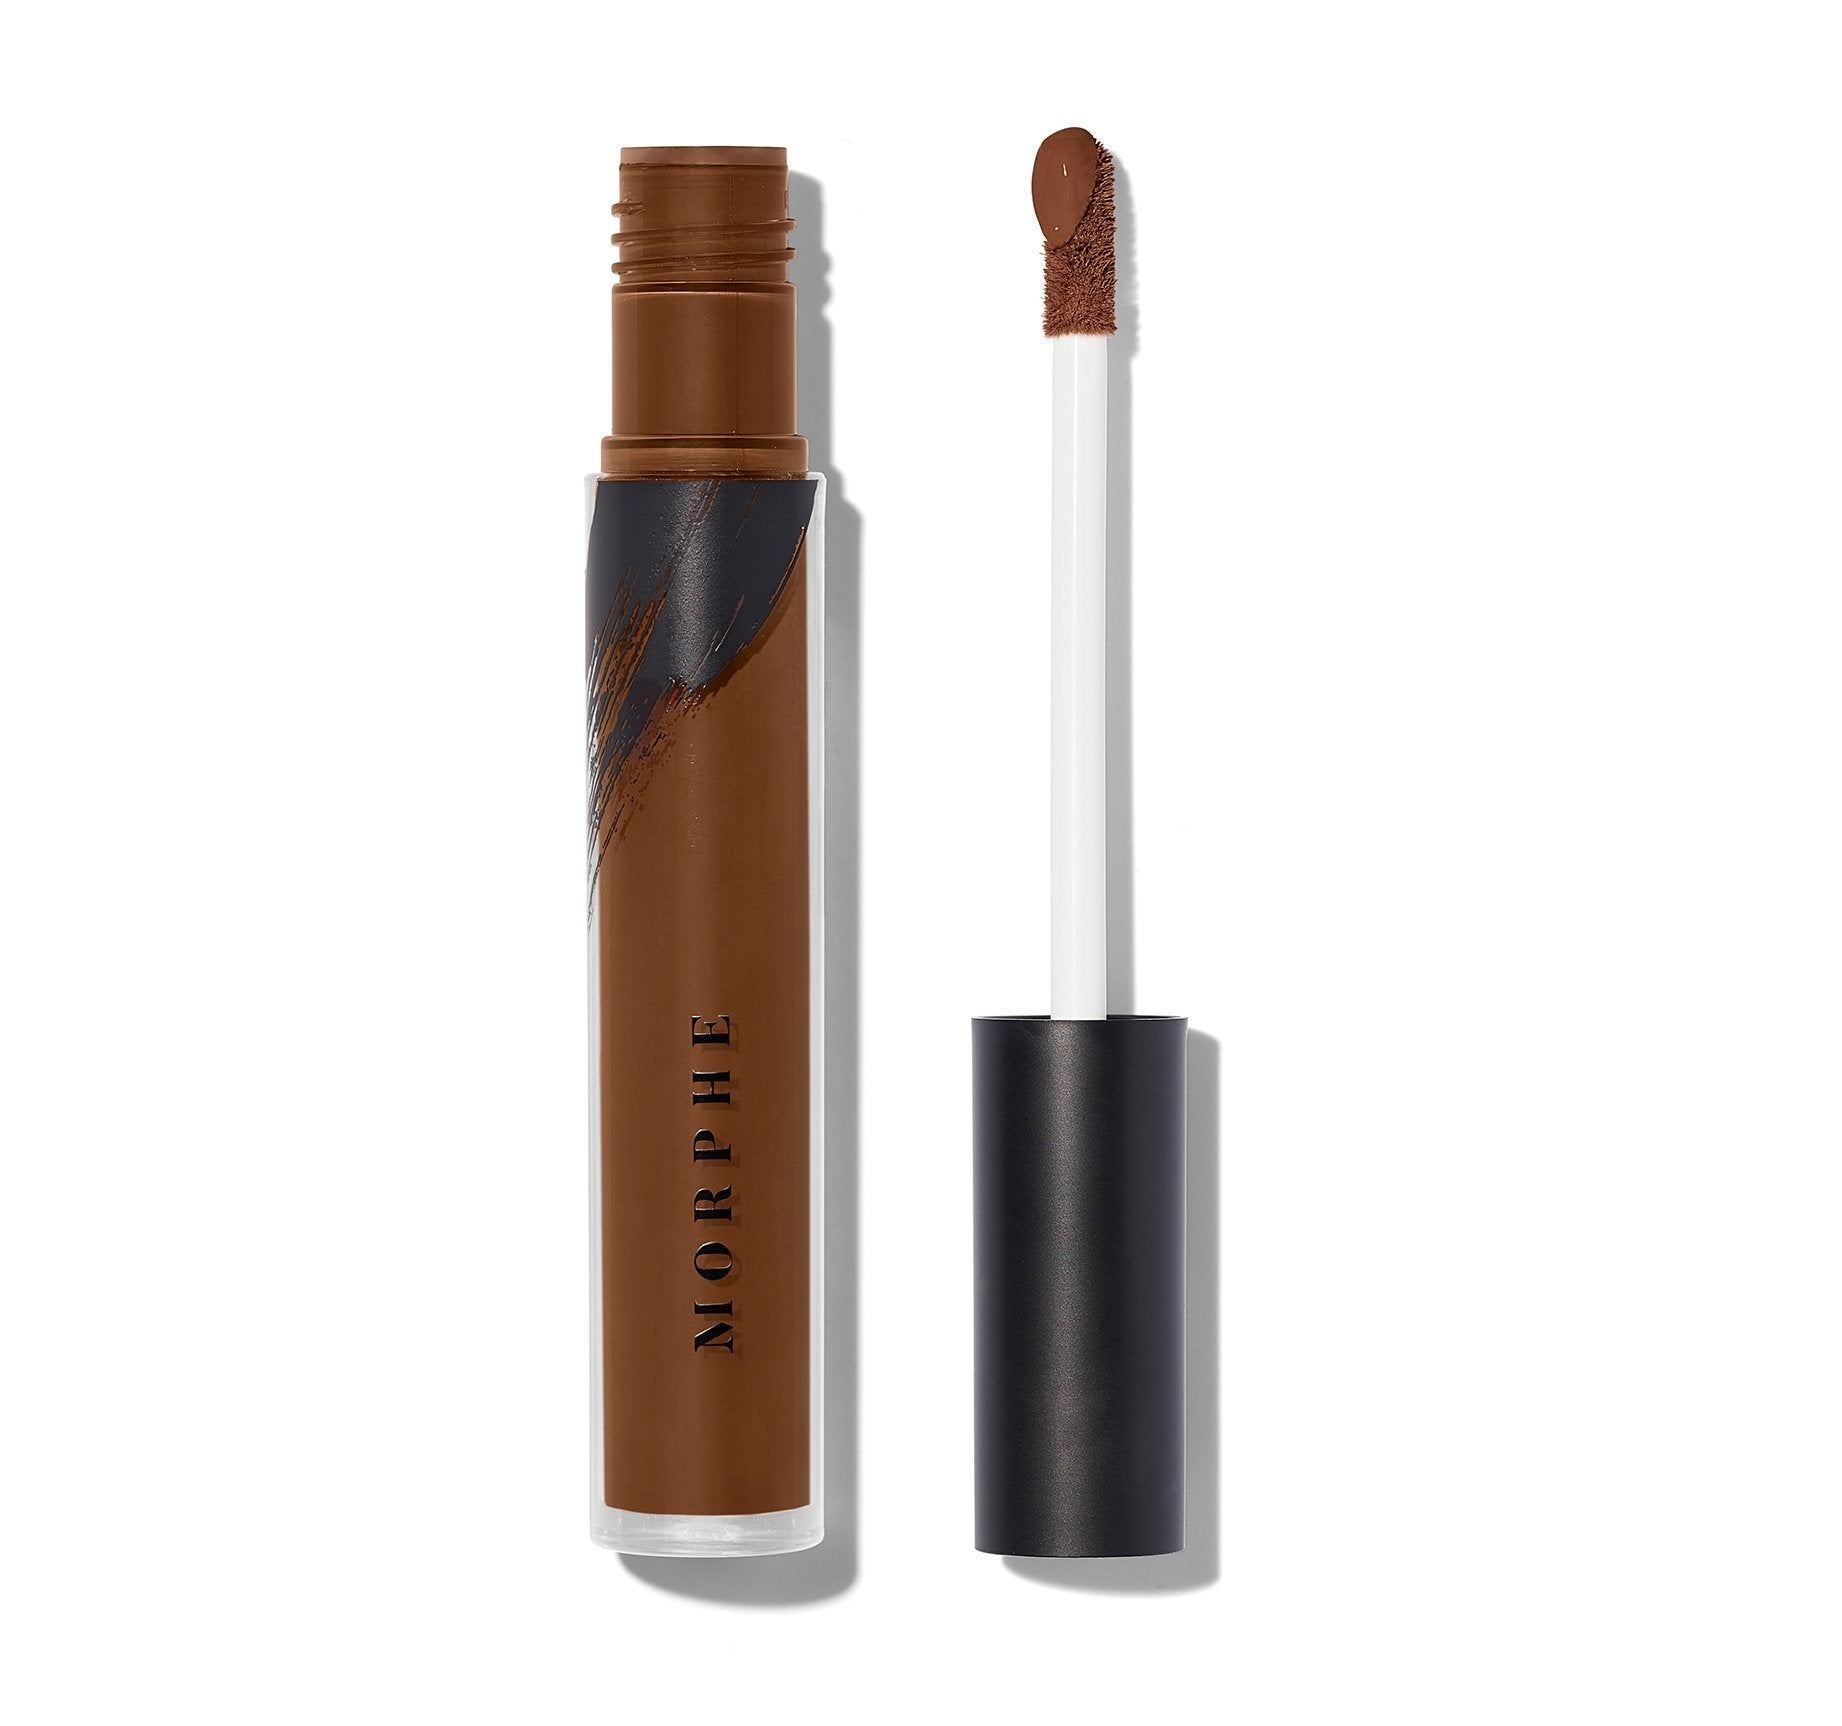 FLUIDITY FULL-COVERAGE CONCEALER - C5.35, view larger image